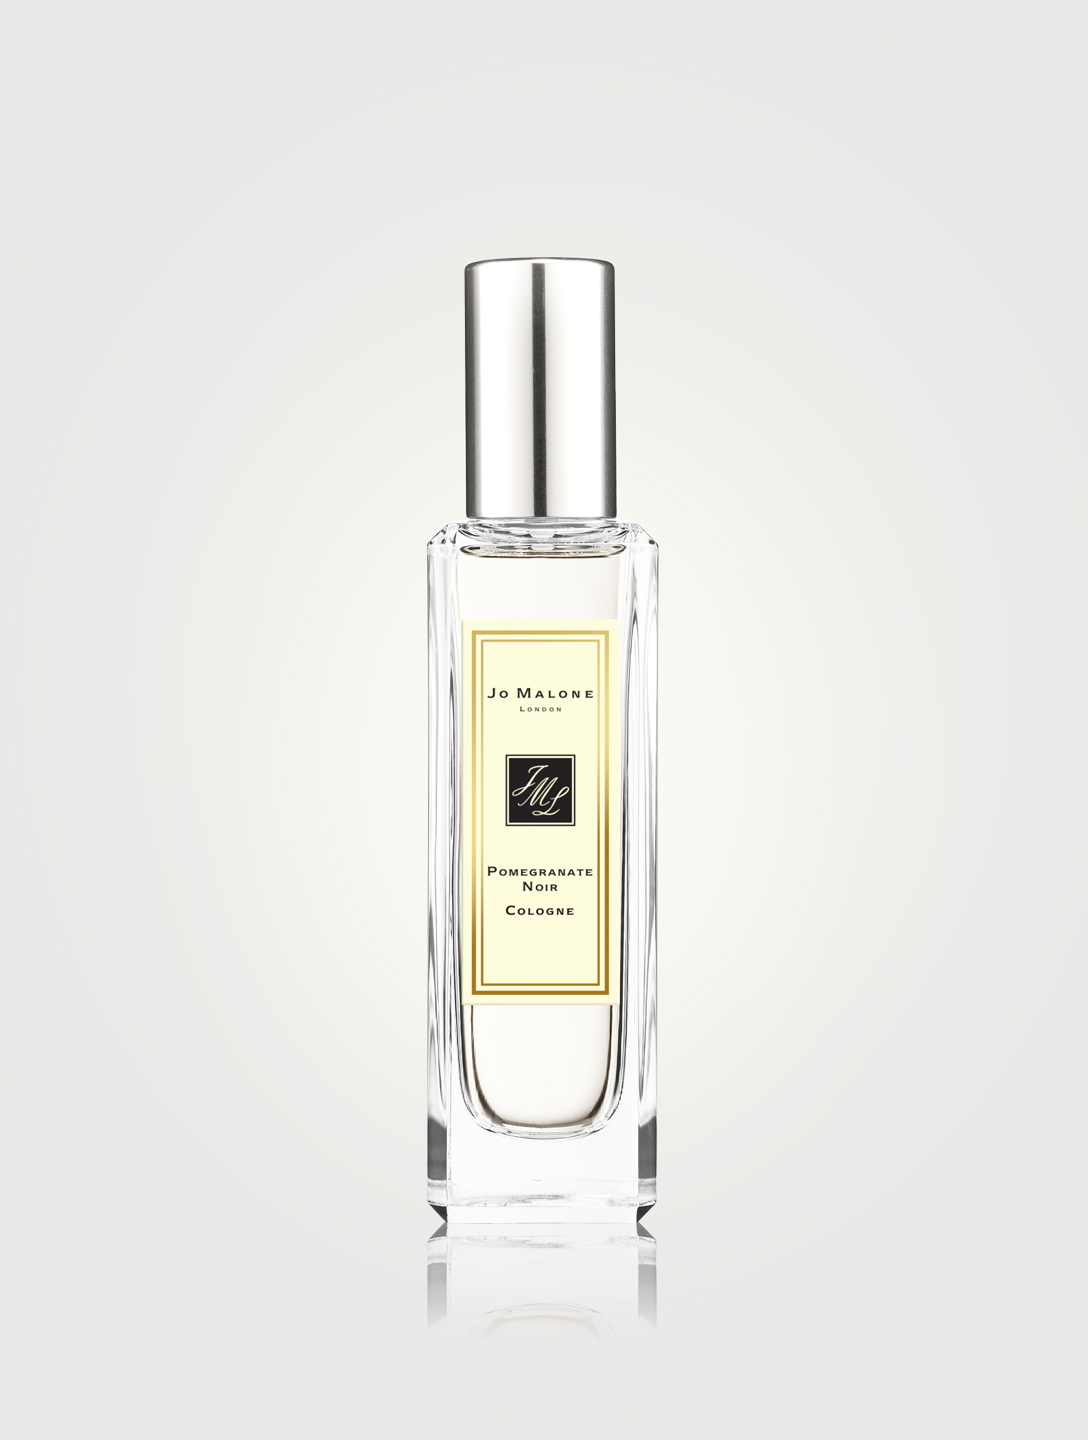 JO MALONE LONDON Pomegranate Noir Cologne Designers